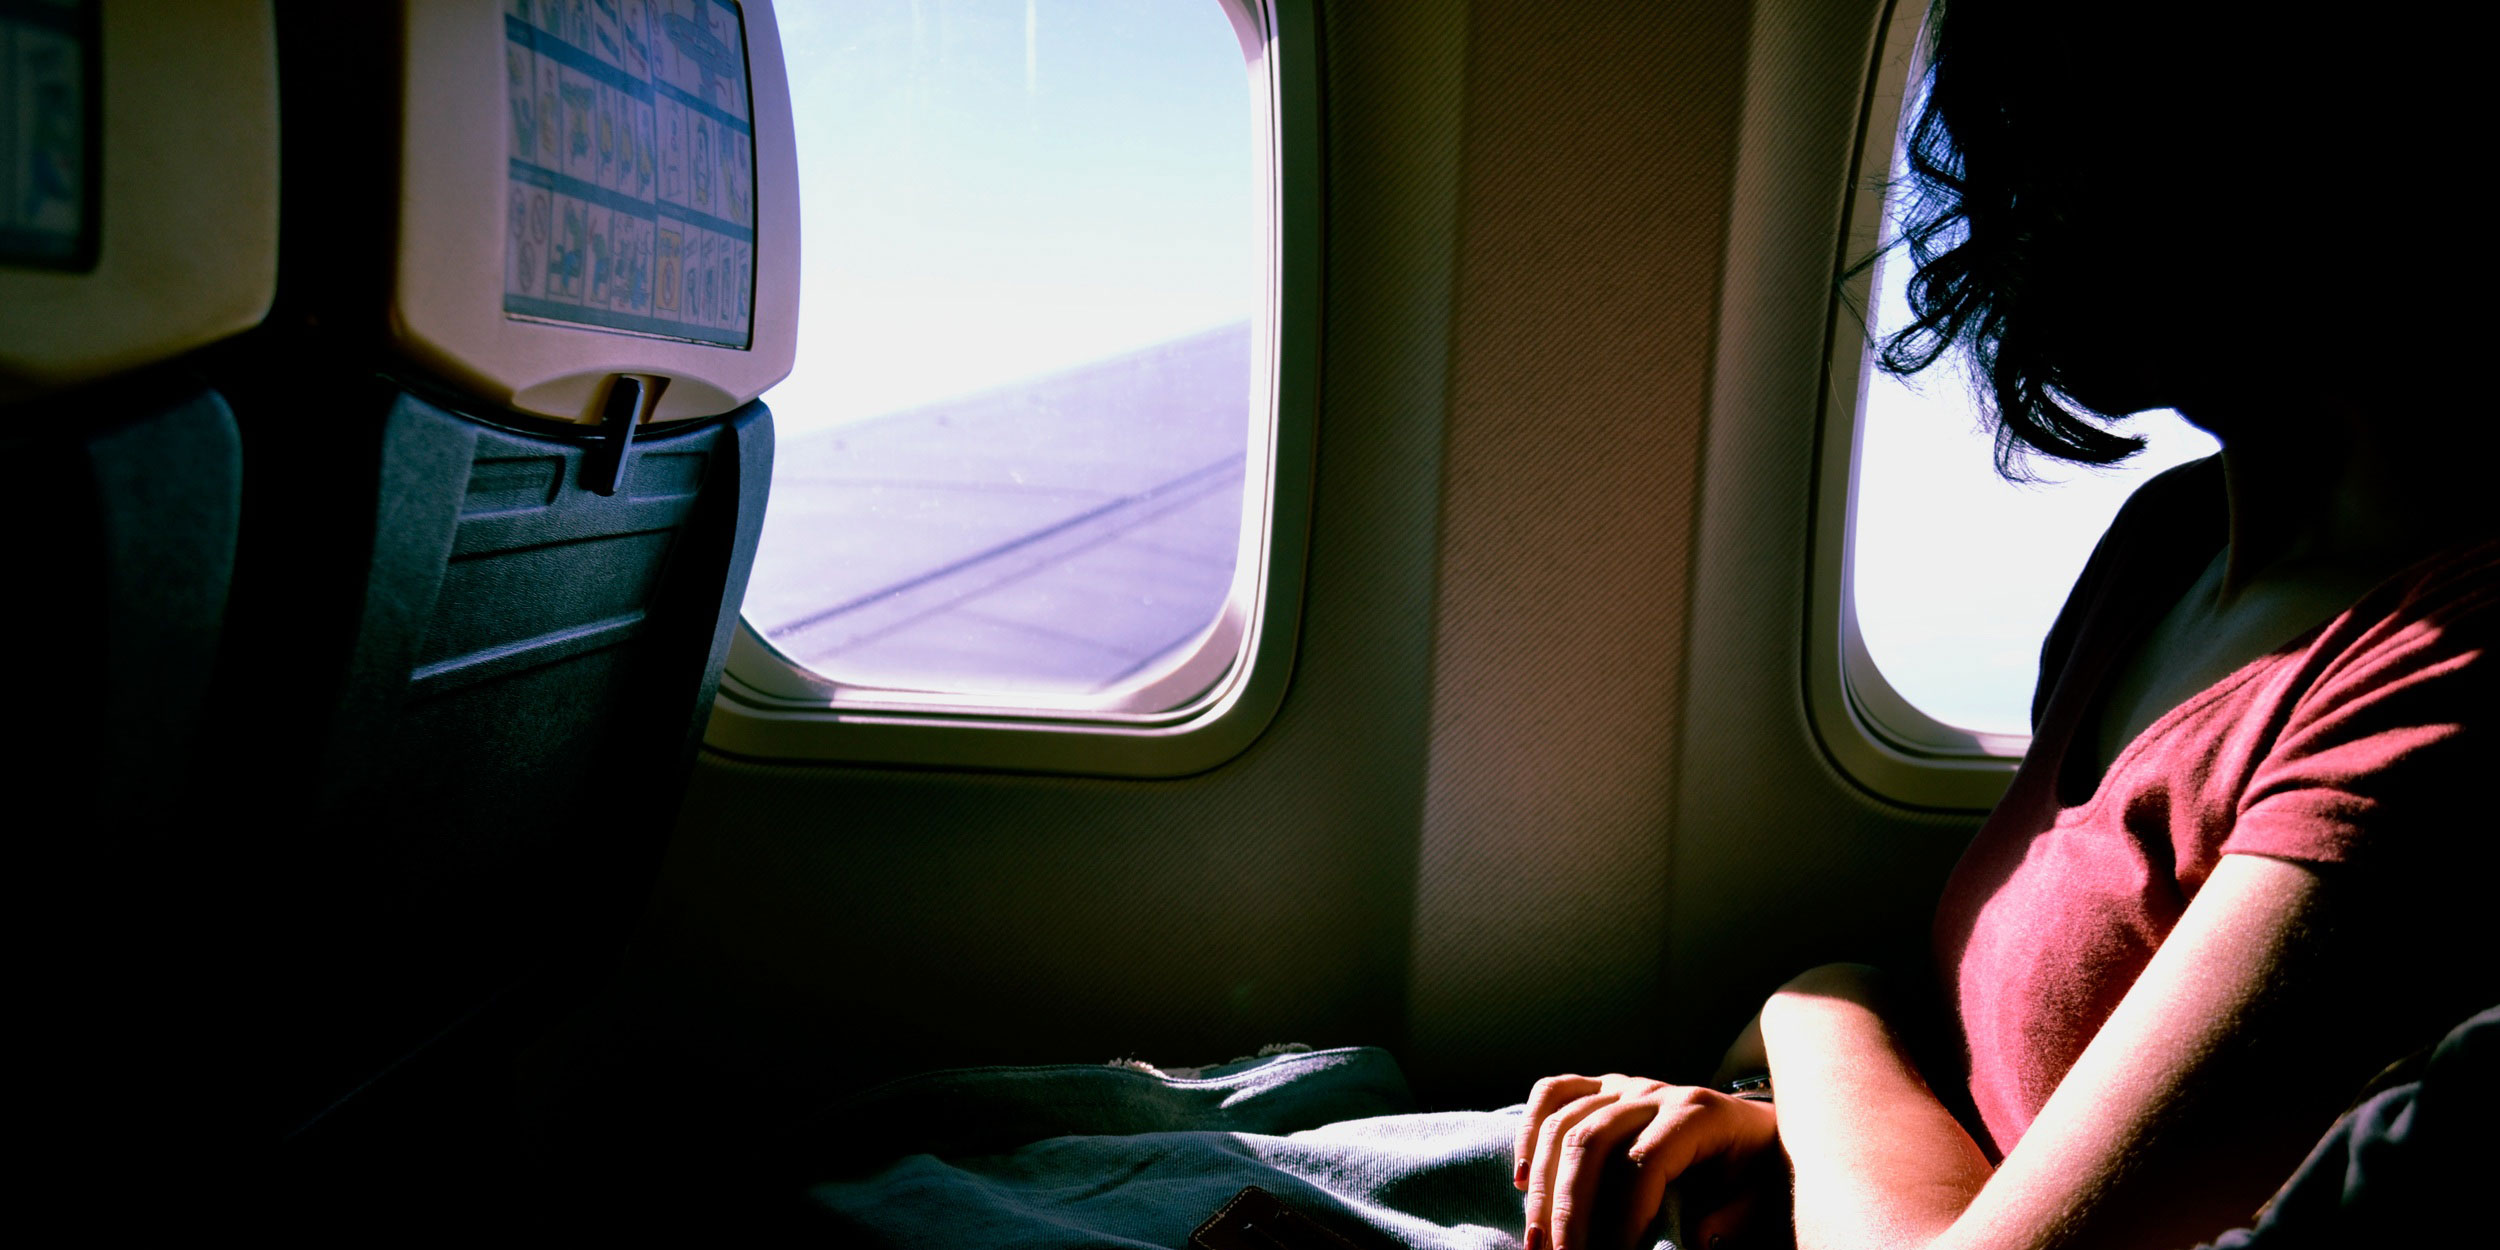 Traveling in an airplane